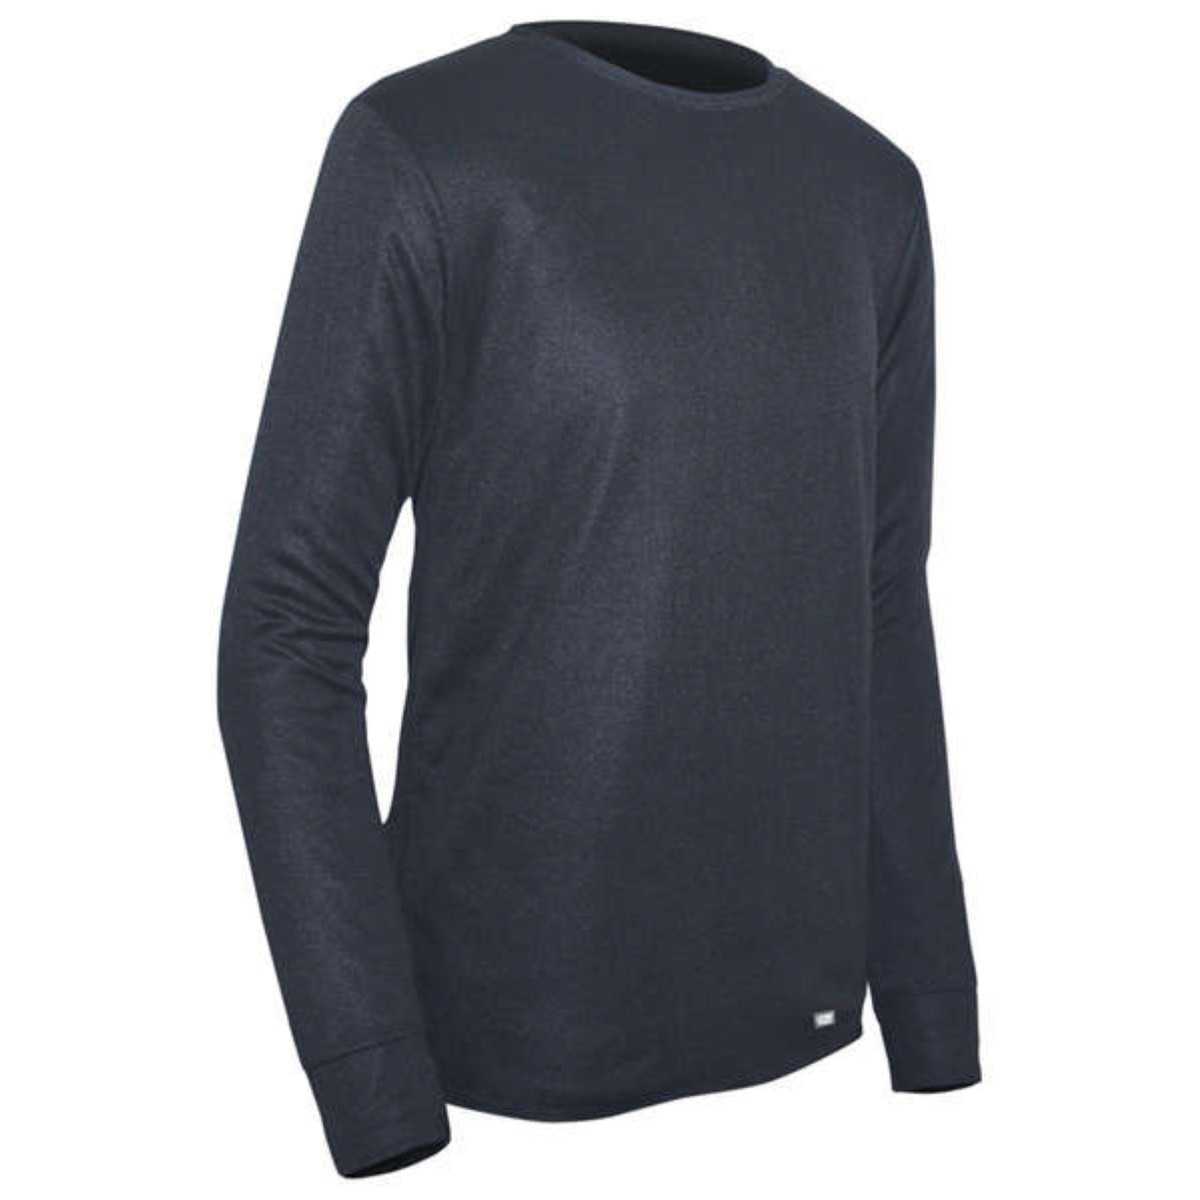 Polarmax Youth Double Base Layer Crew